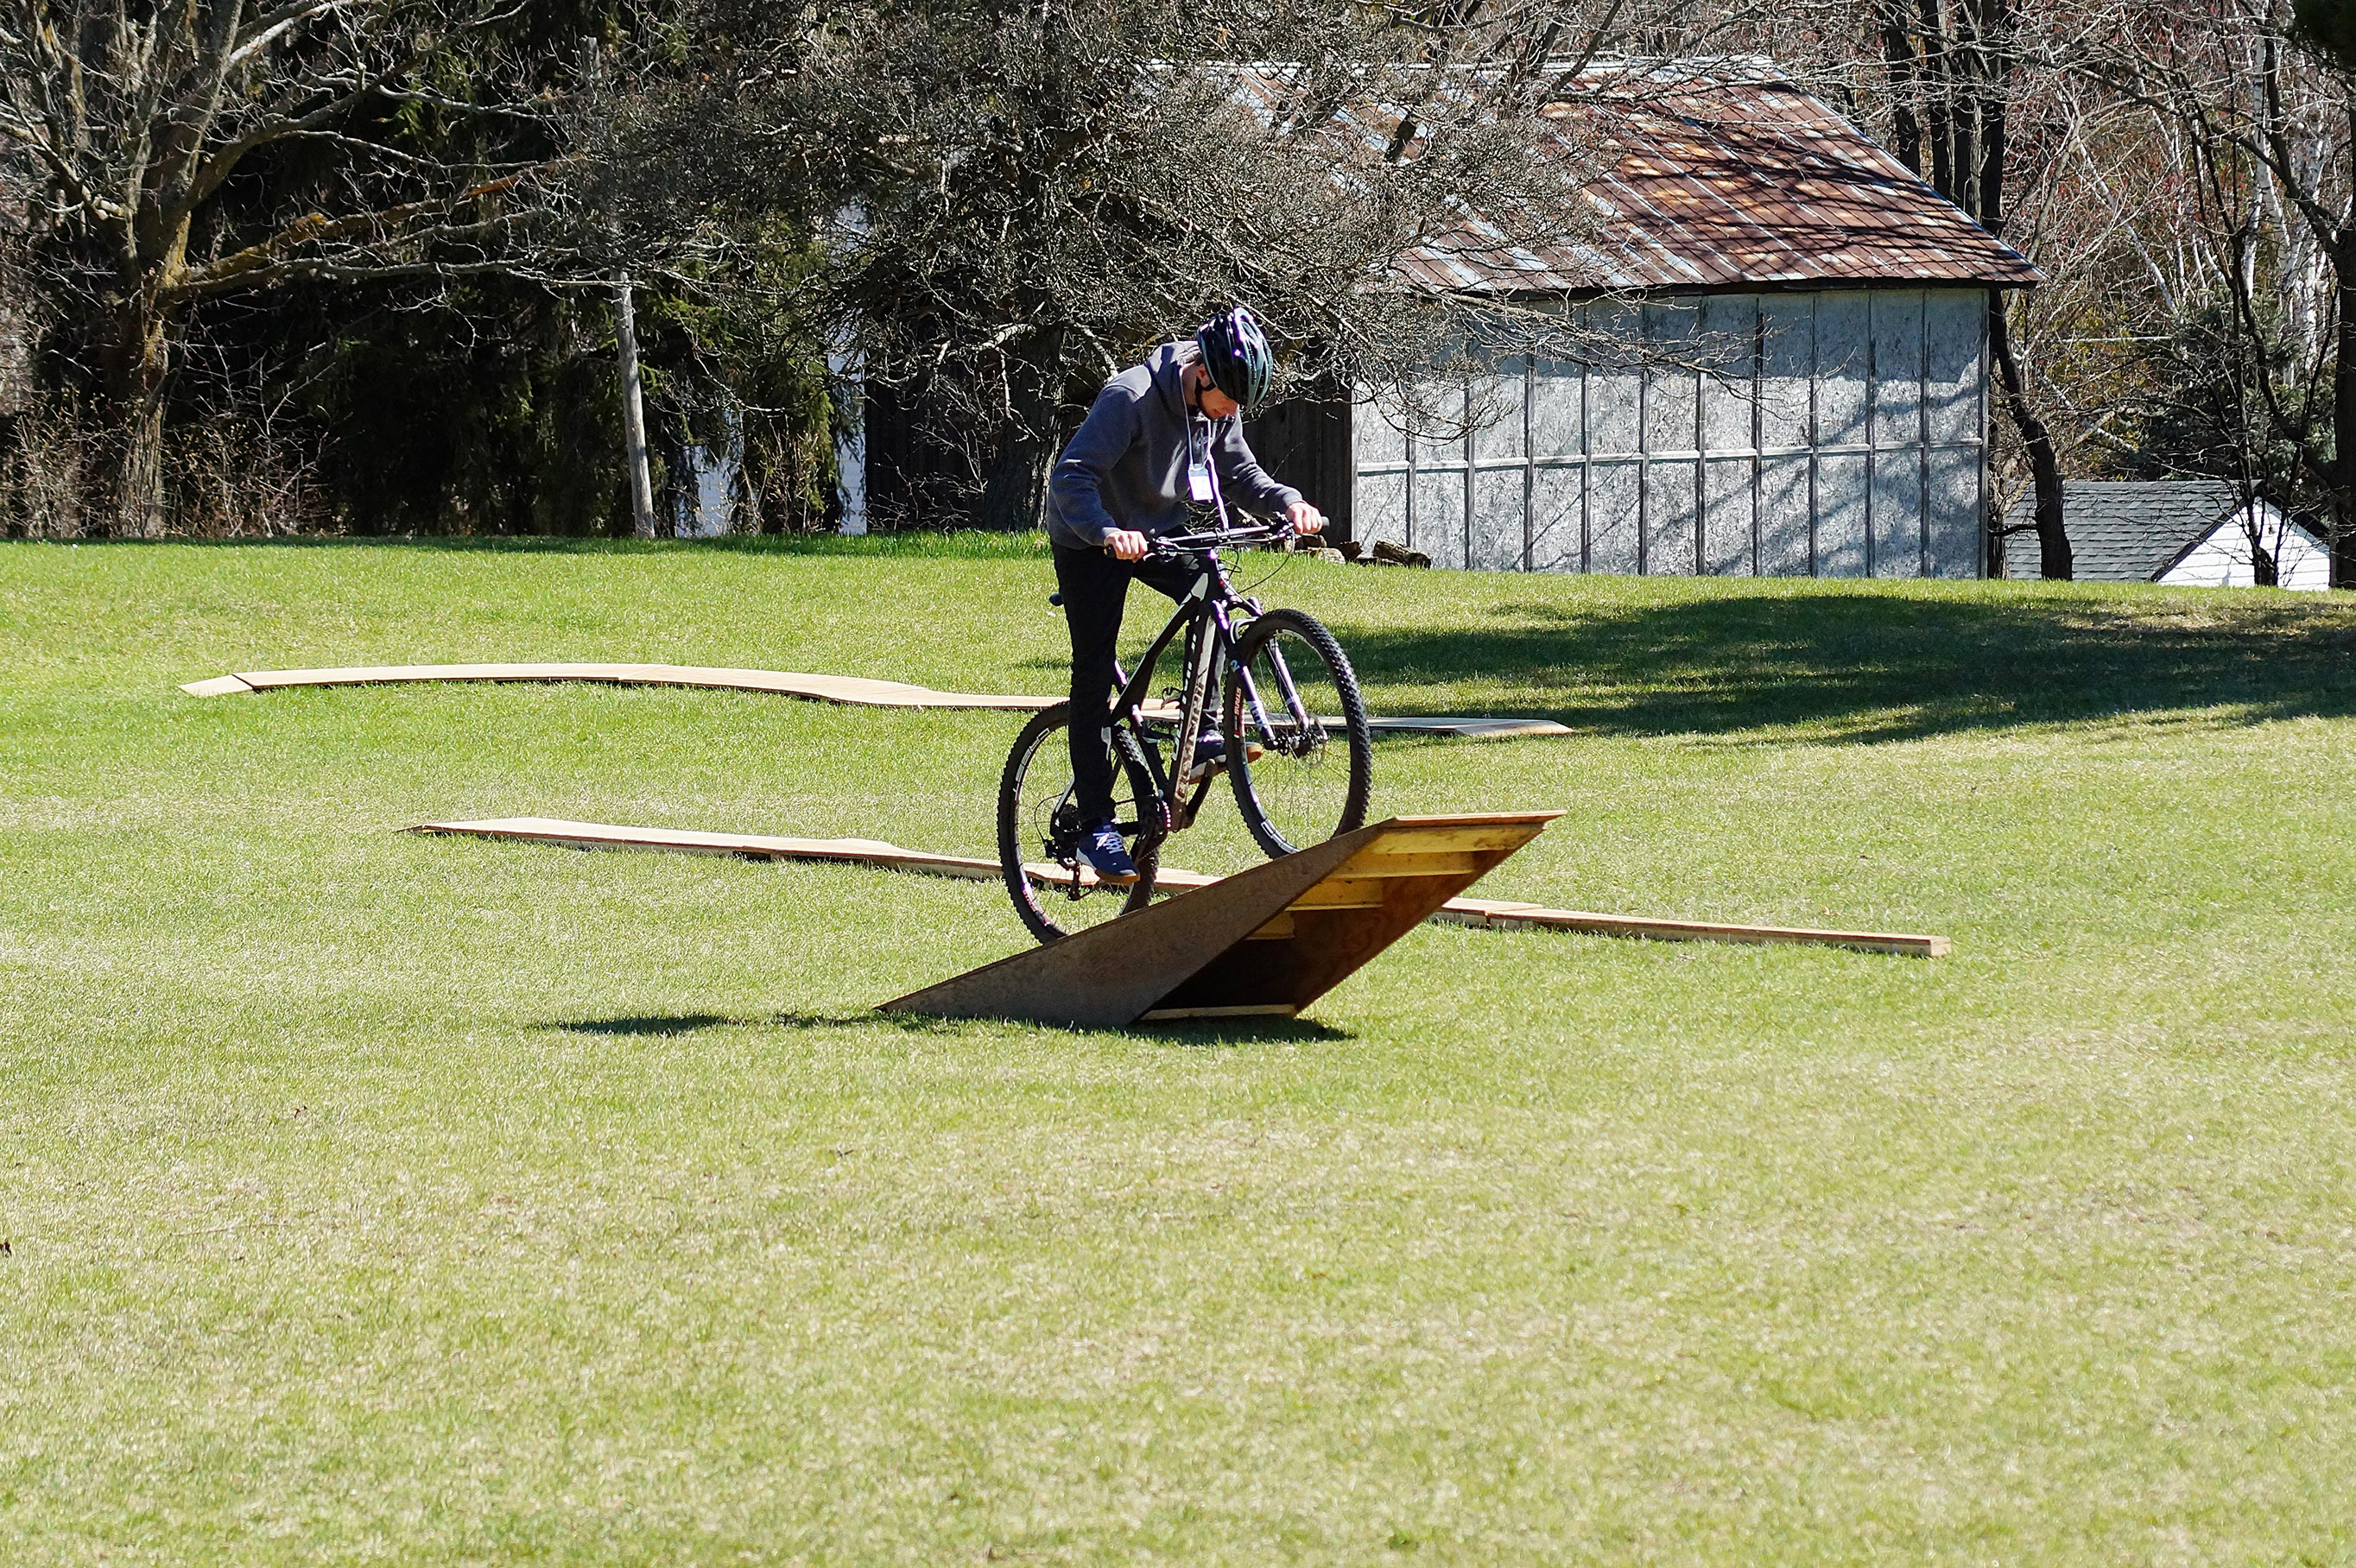 Cyclist ascending bicycle obstacle